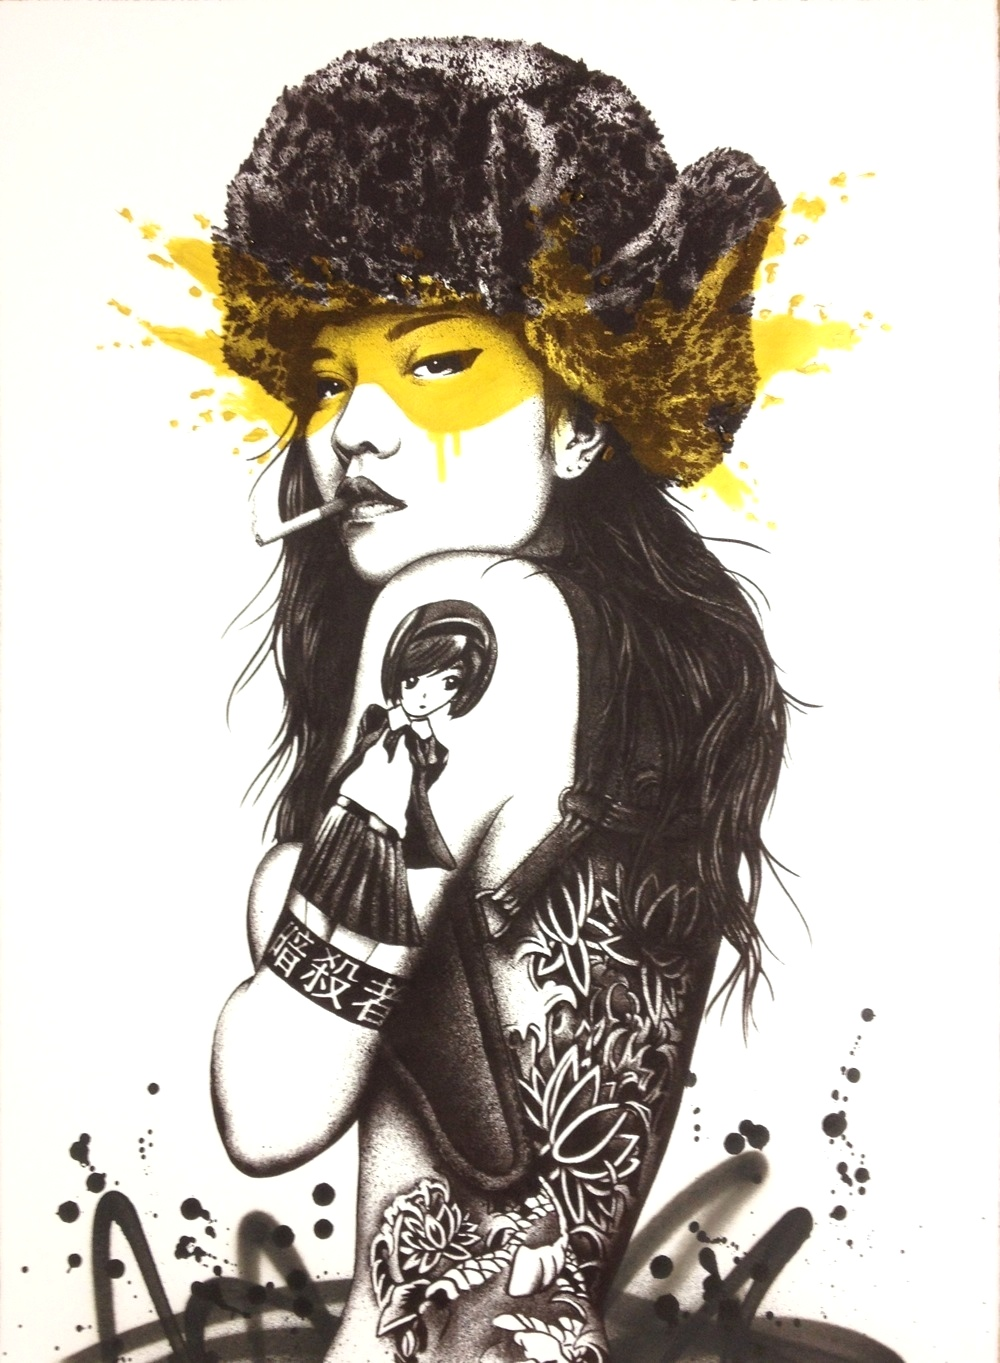 fin dac Killer Instinct gold